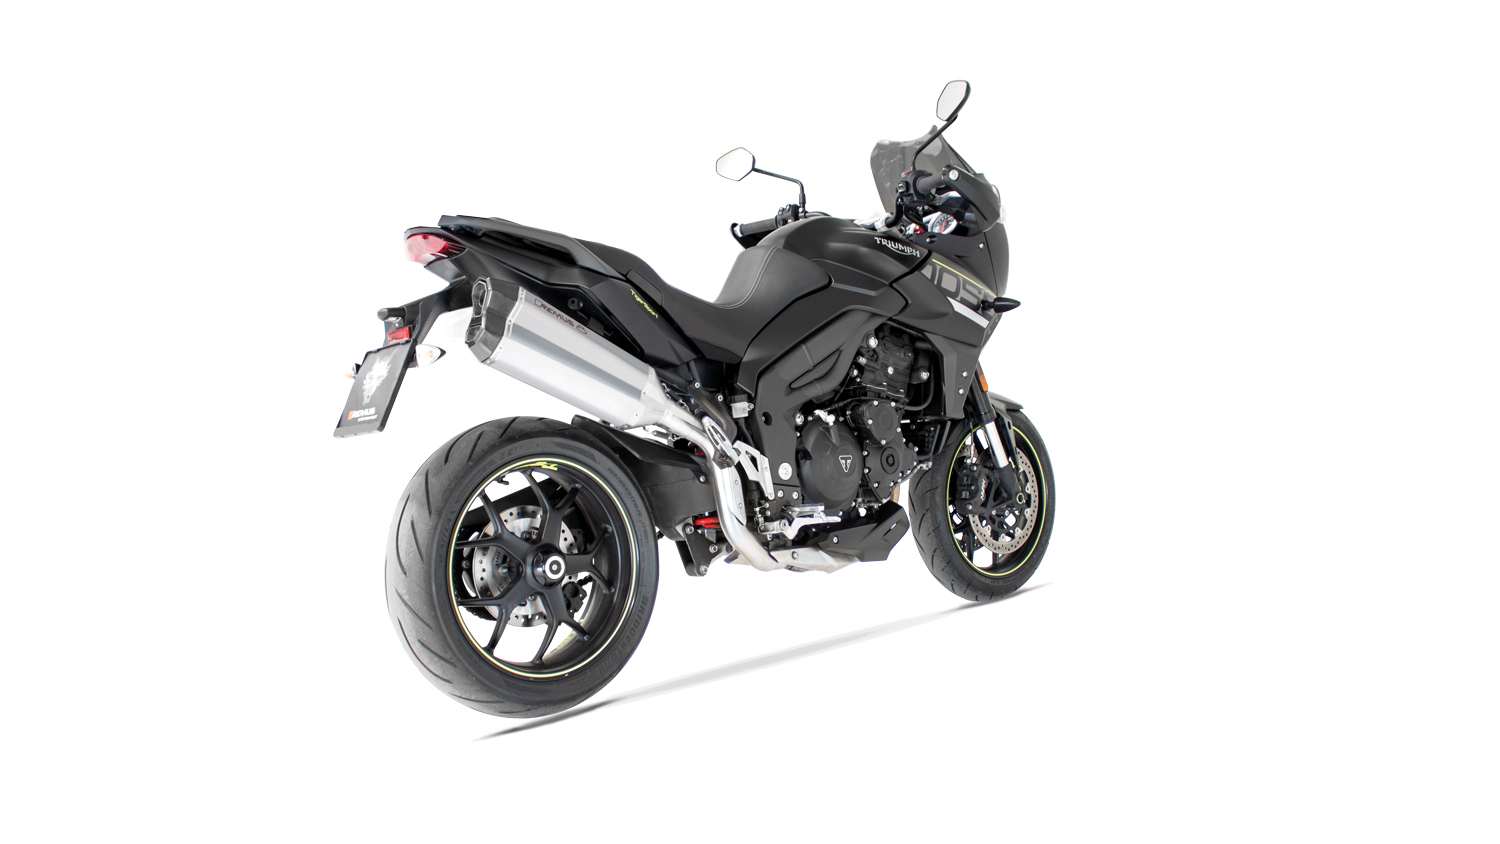 remus news bike info 15 race 17 triumph tiger 1050 sport. Black Bedroom Furniture Sets. Home Design Ideas